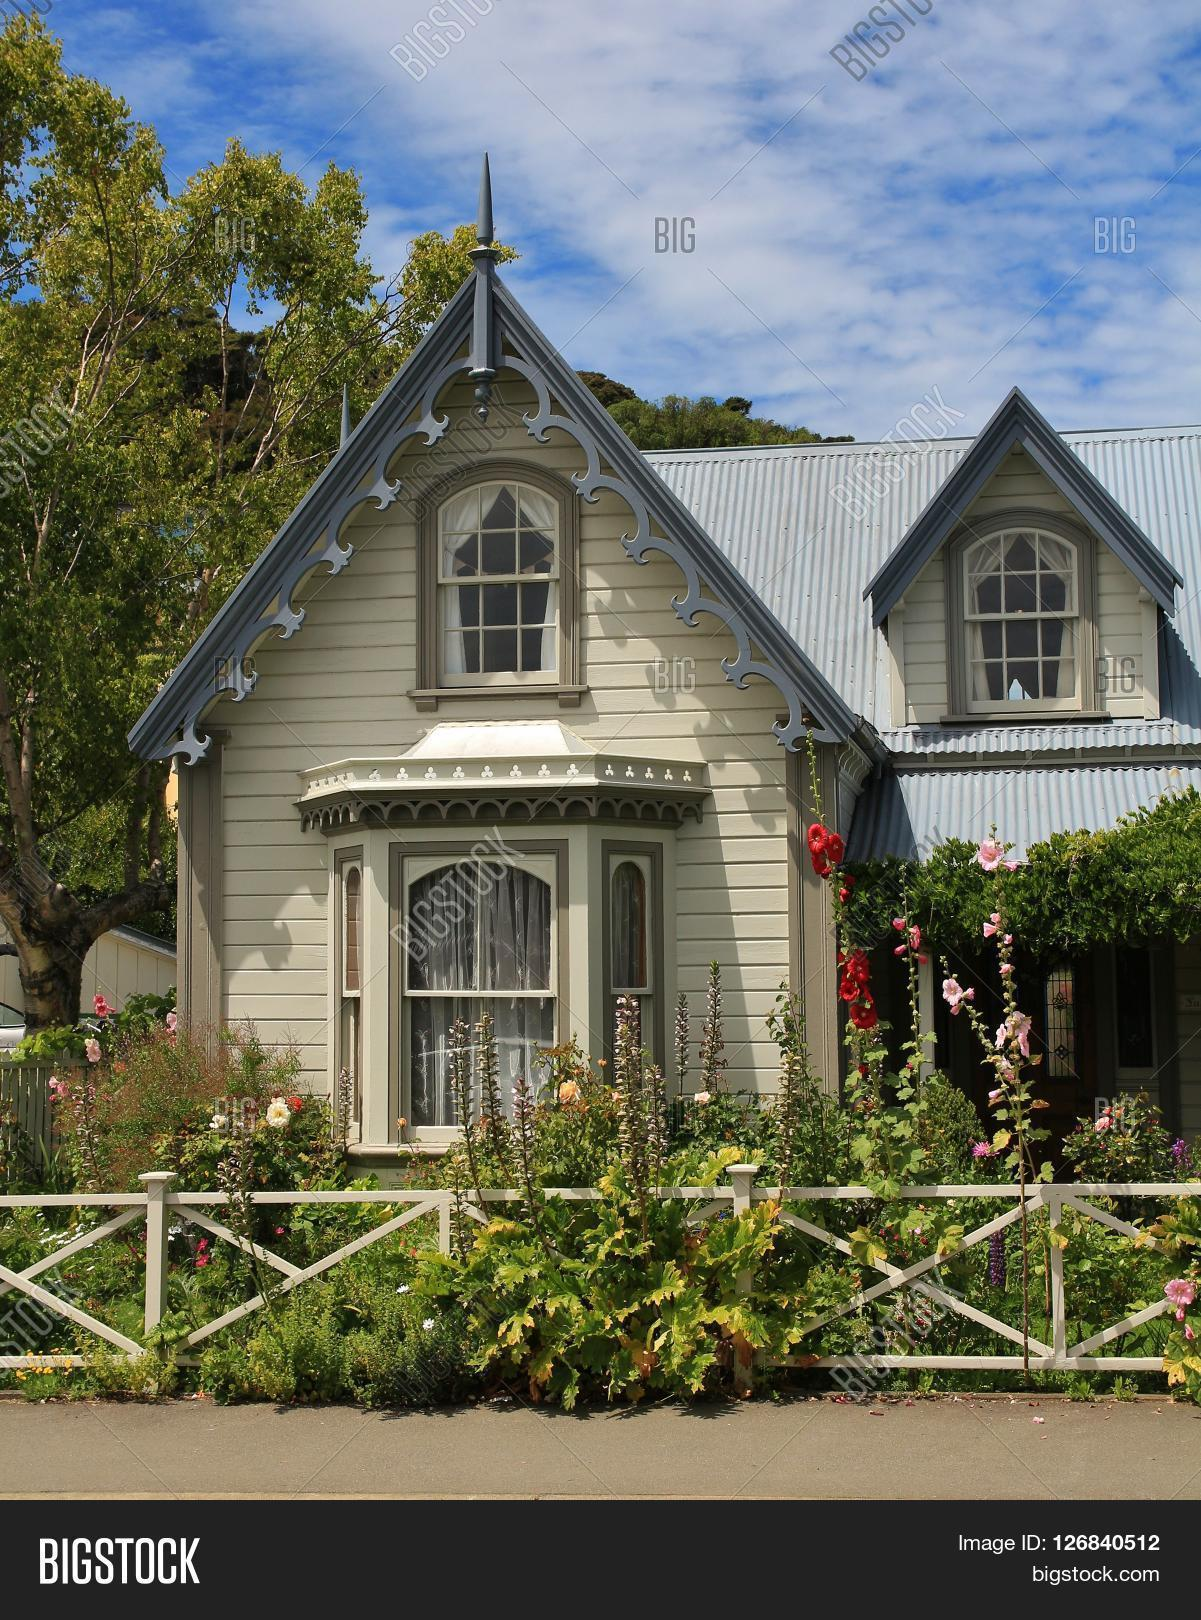 old house in akaroa. beautiful small house with flowers in the